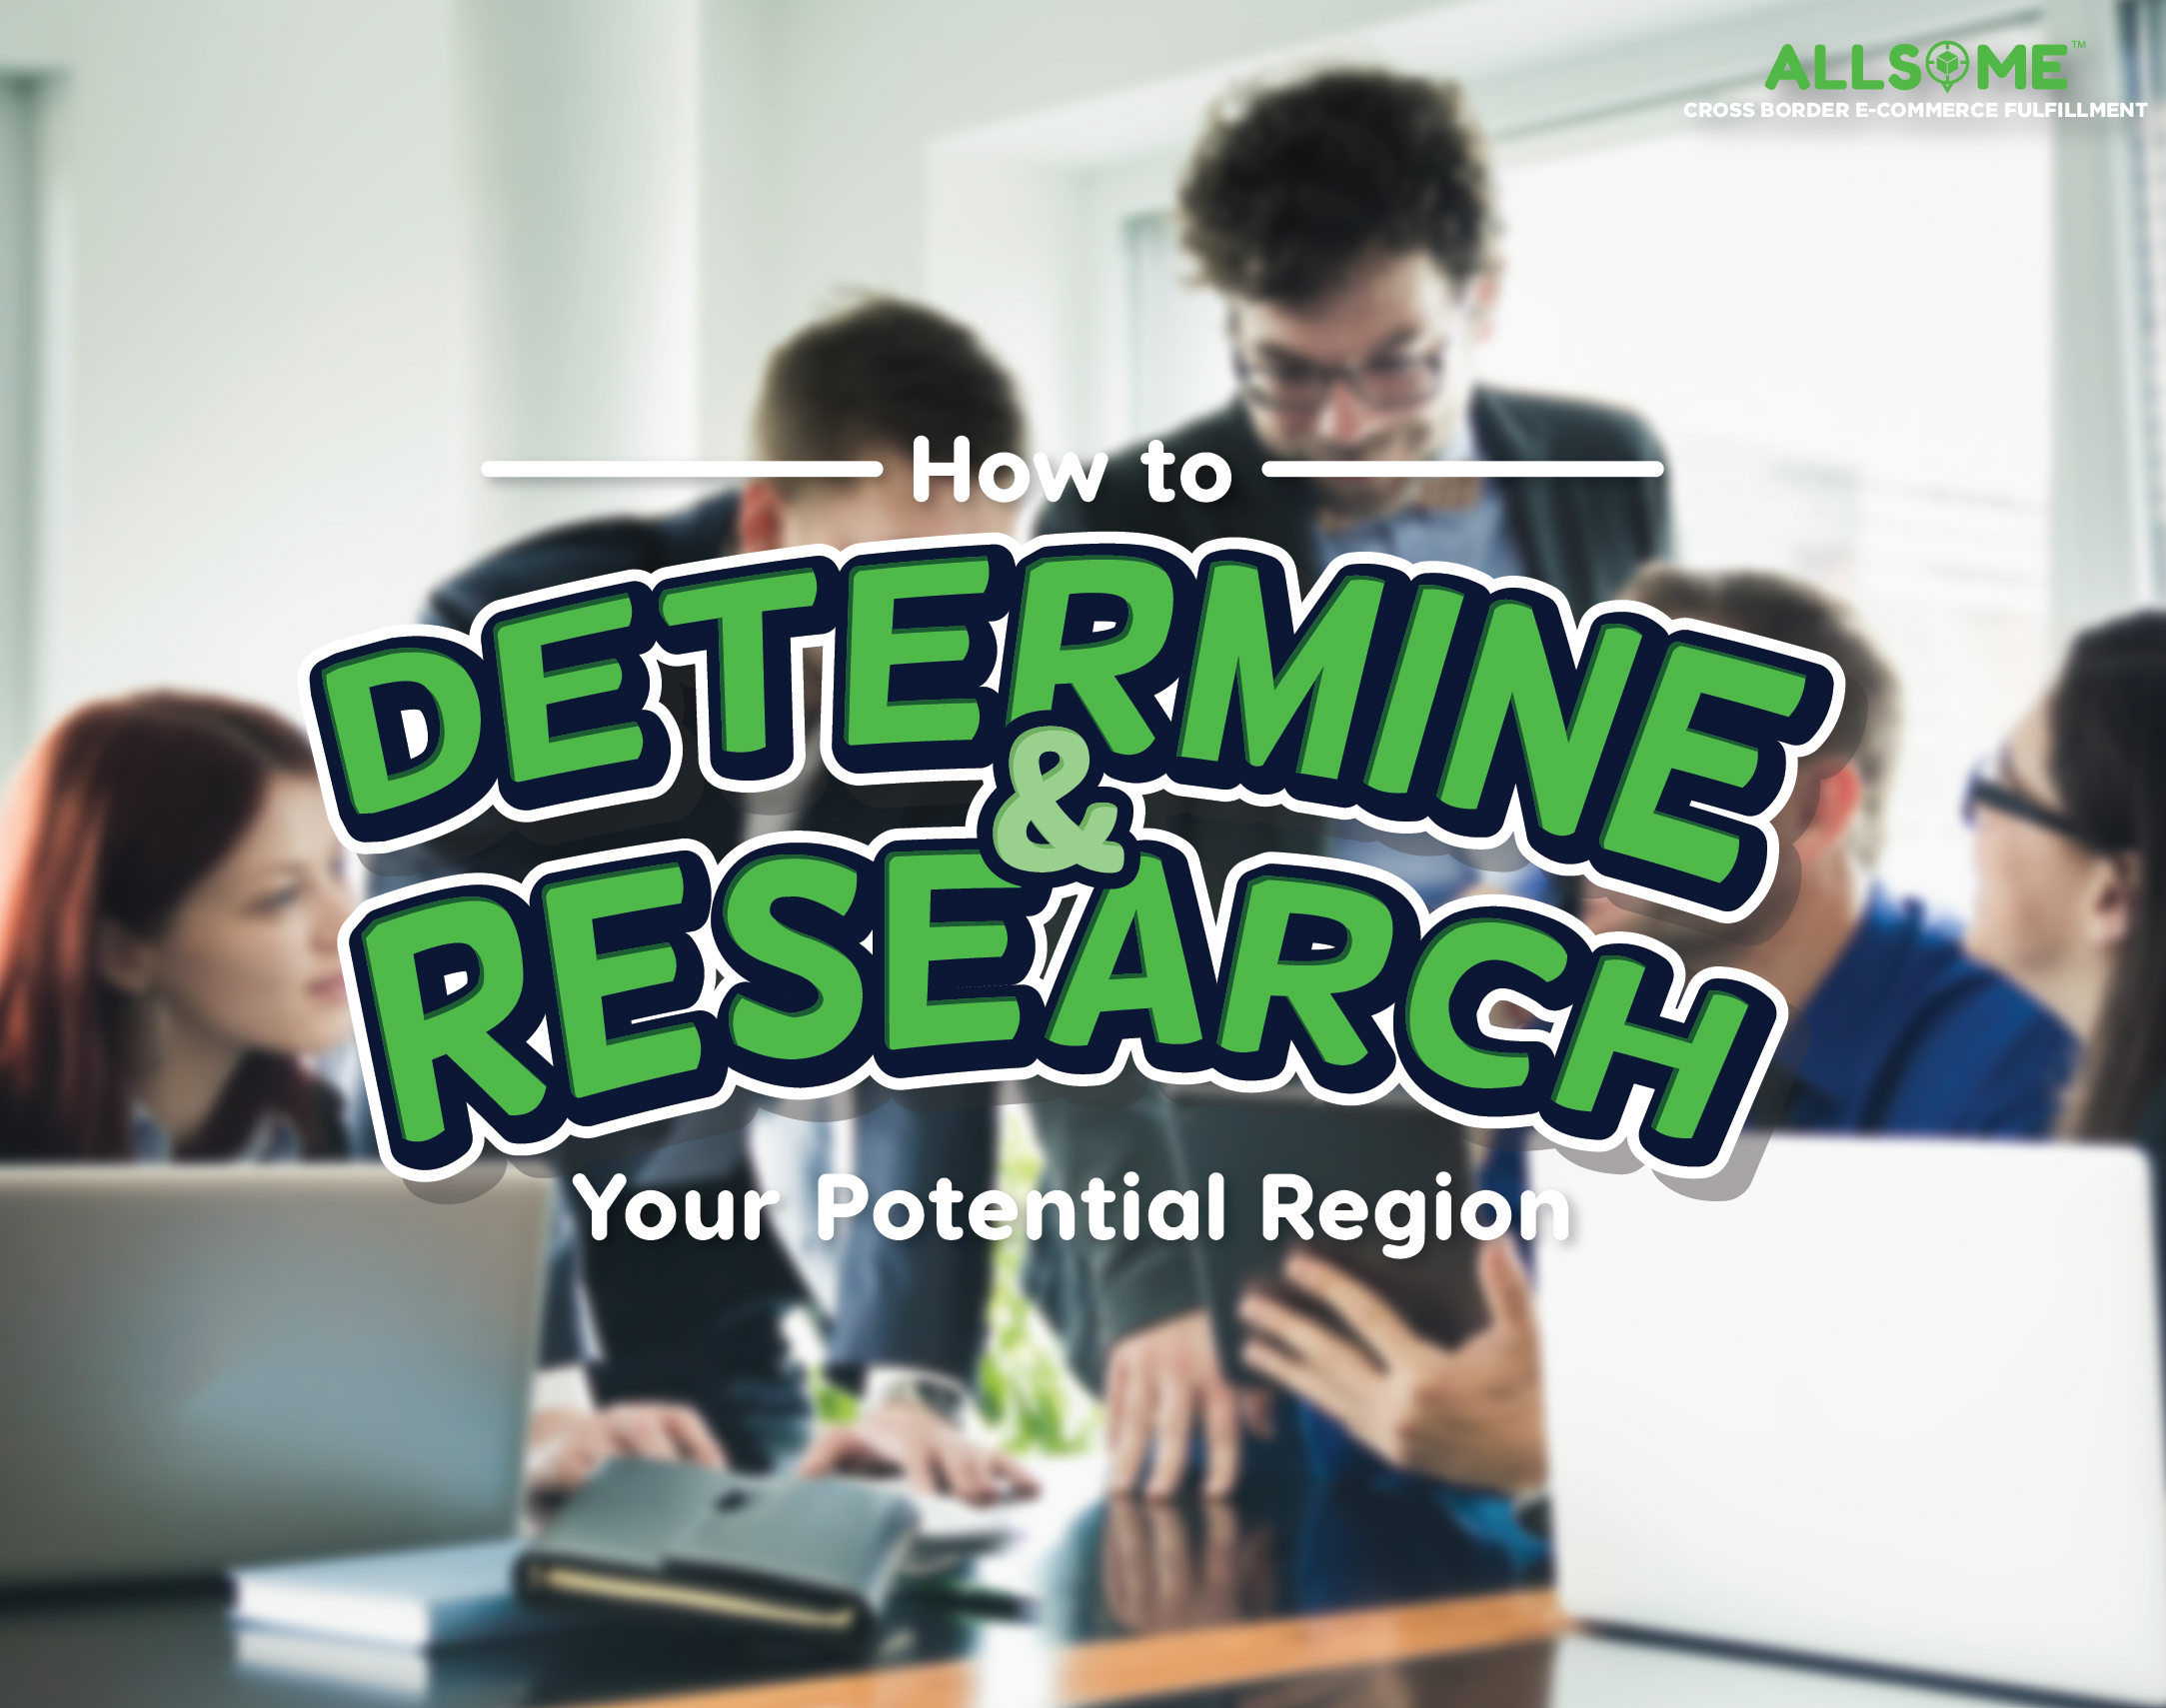 How to Determine & Research Your Potential Region